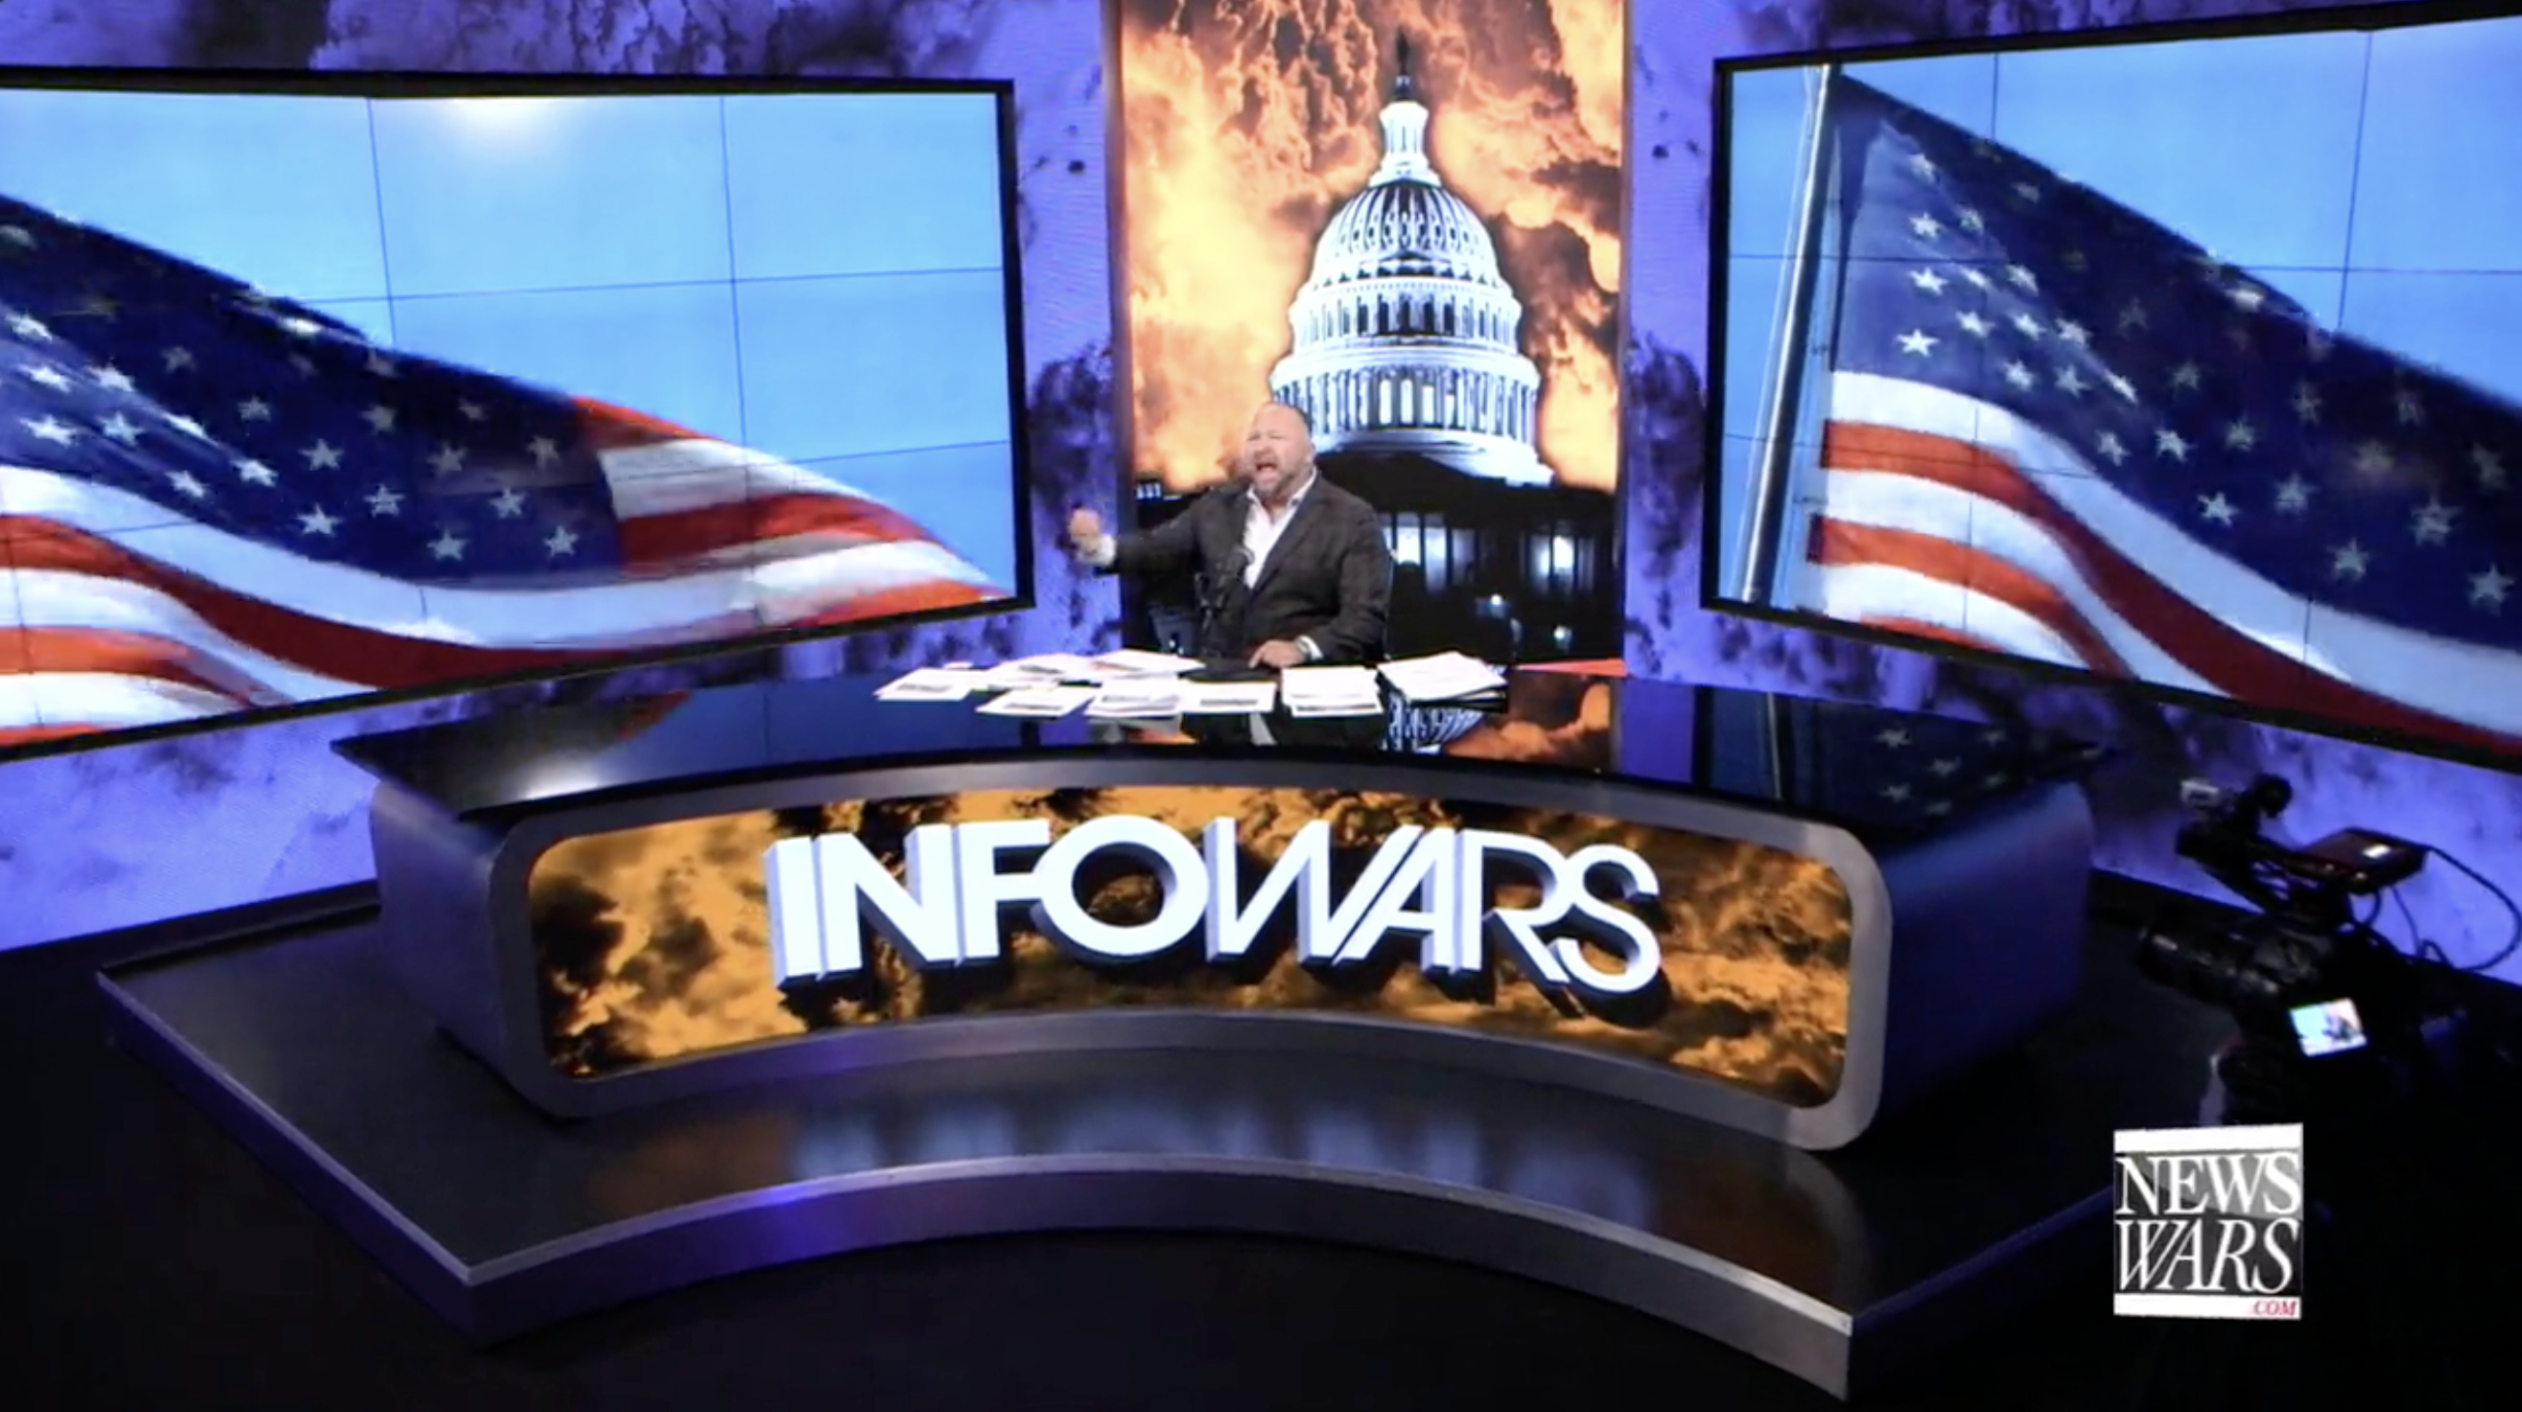 Alex Jones Infowars Studio American Flag Flags July 1st 2020